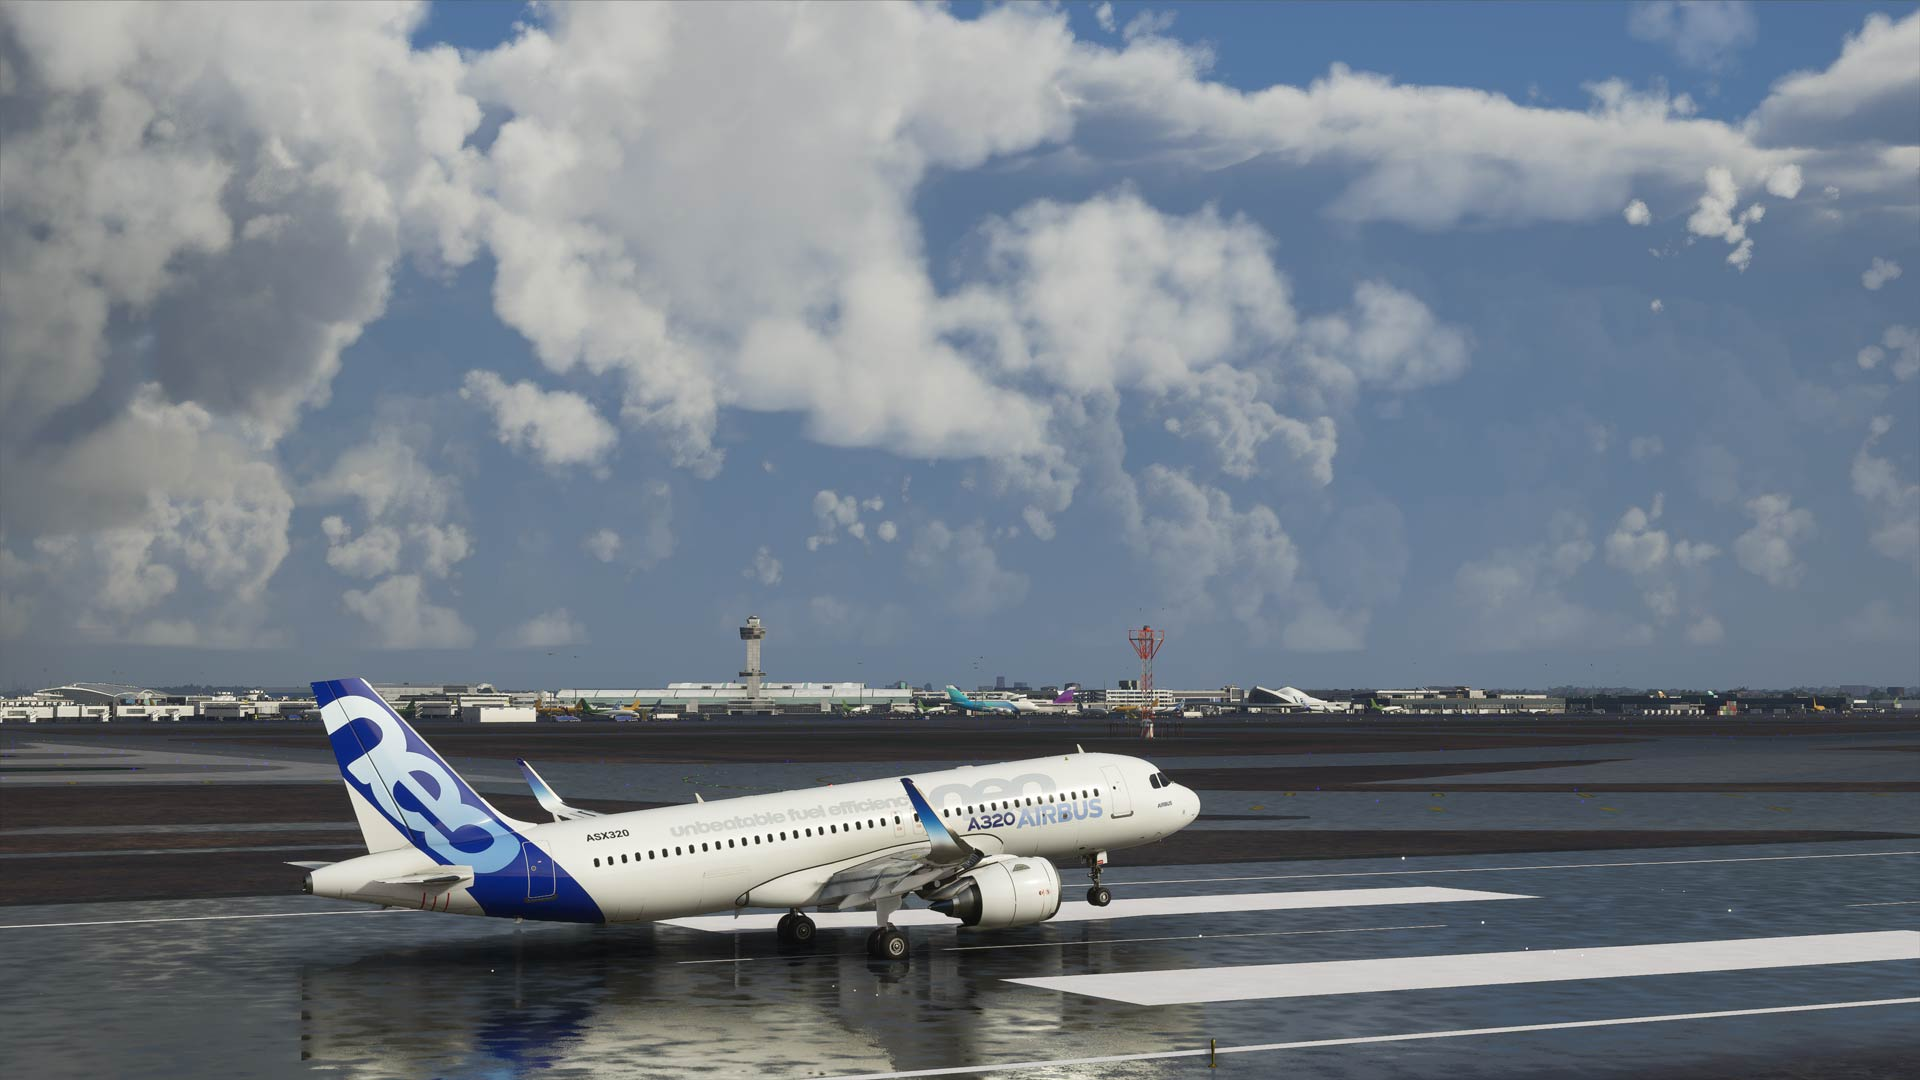 Microsoft Flight Simulator Added A Giant Monolith To Melbourne